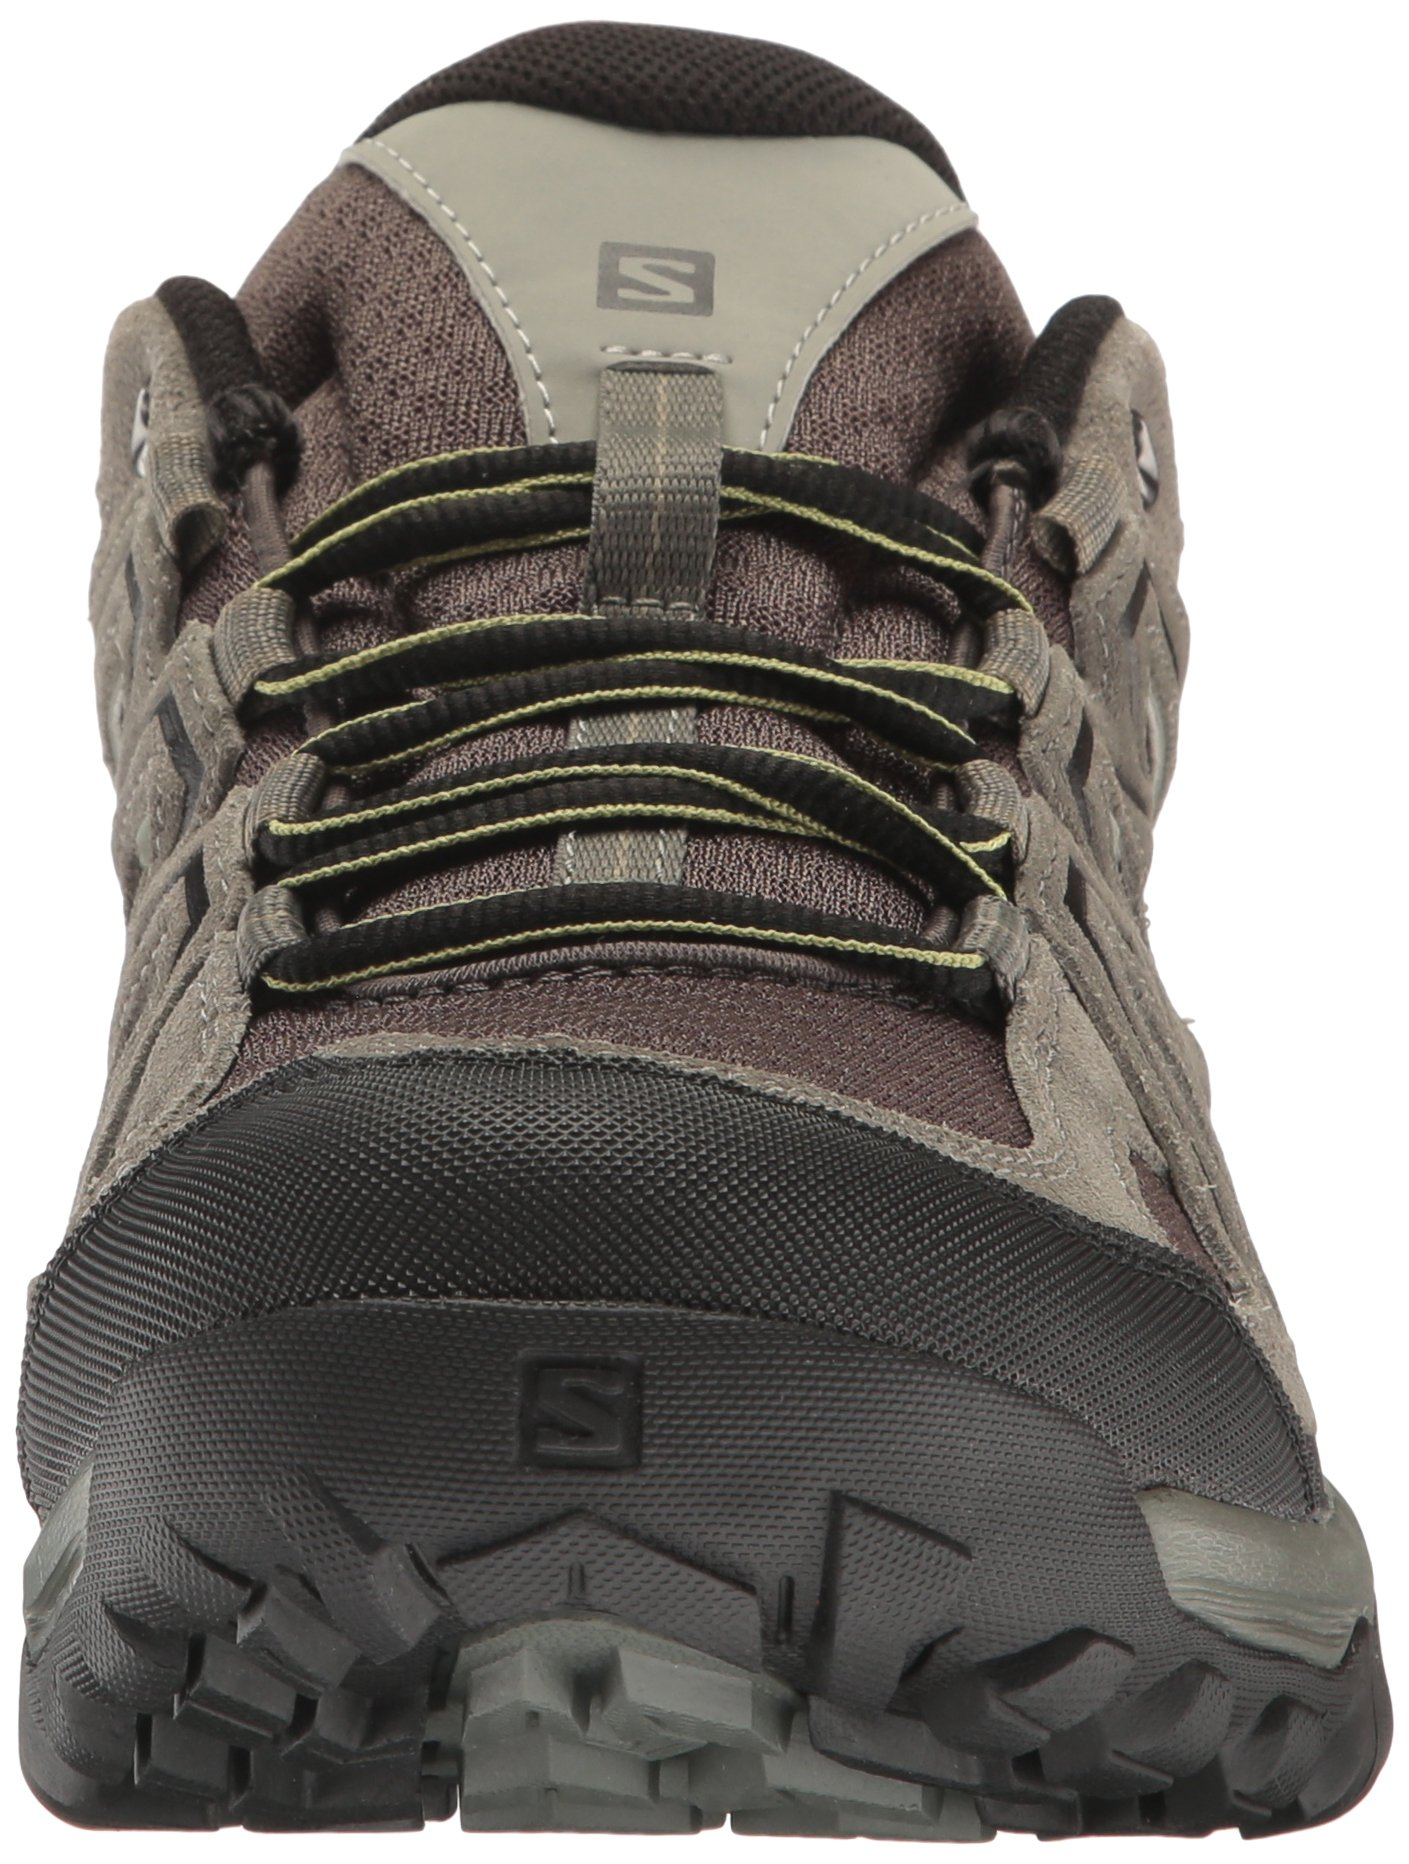 Details about SALOMON Men's Evasion 2 AERO Hiking Shoe, Black, 7 Choose SZcolor